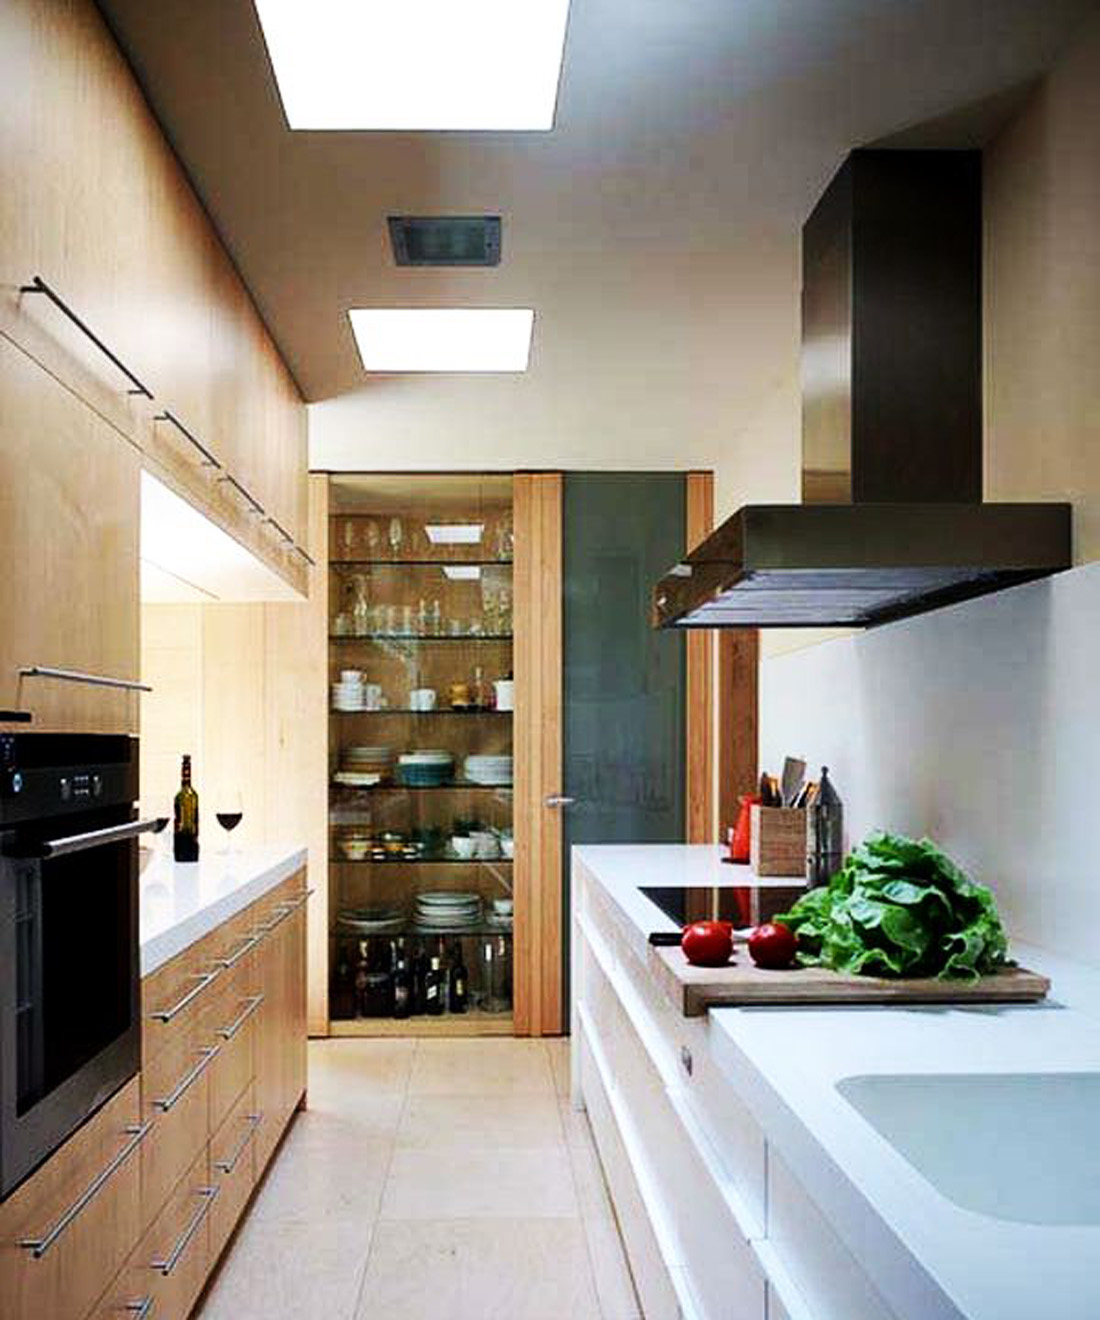 contemporary kitchen design ideas 25 modern small kitchen design ideas 314